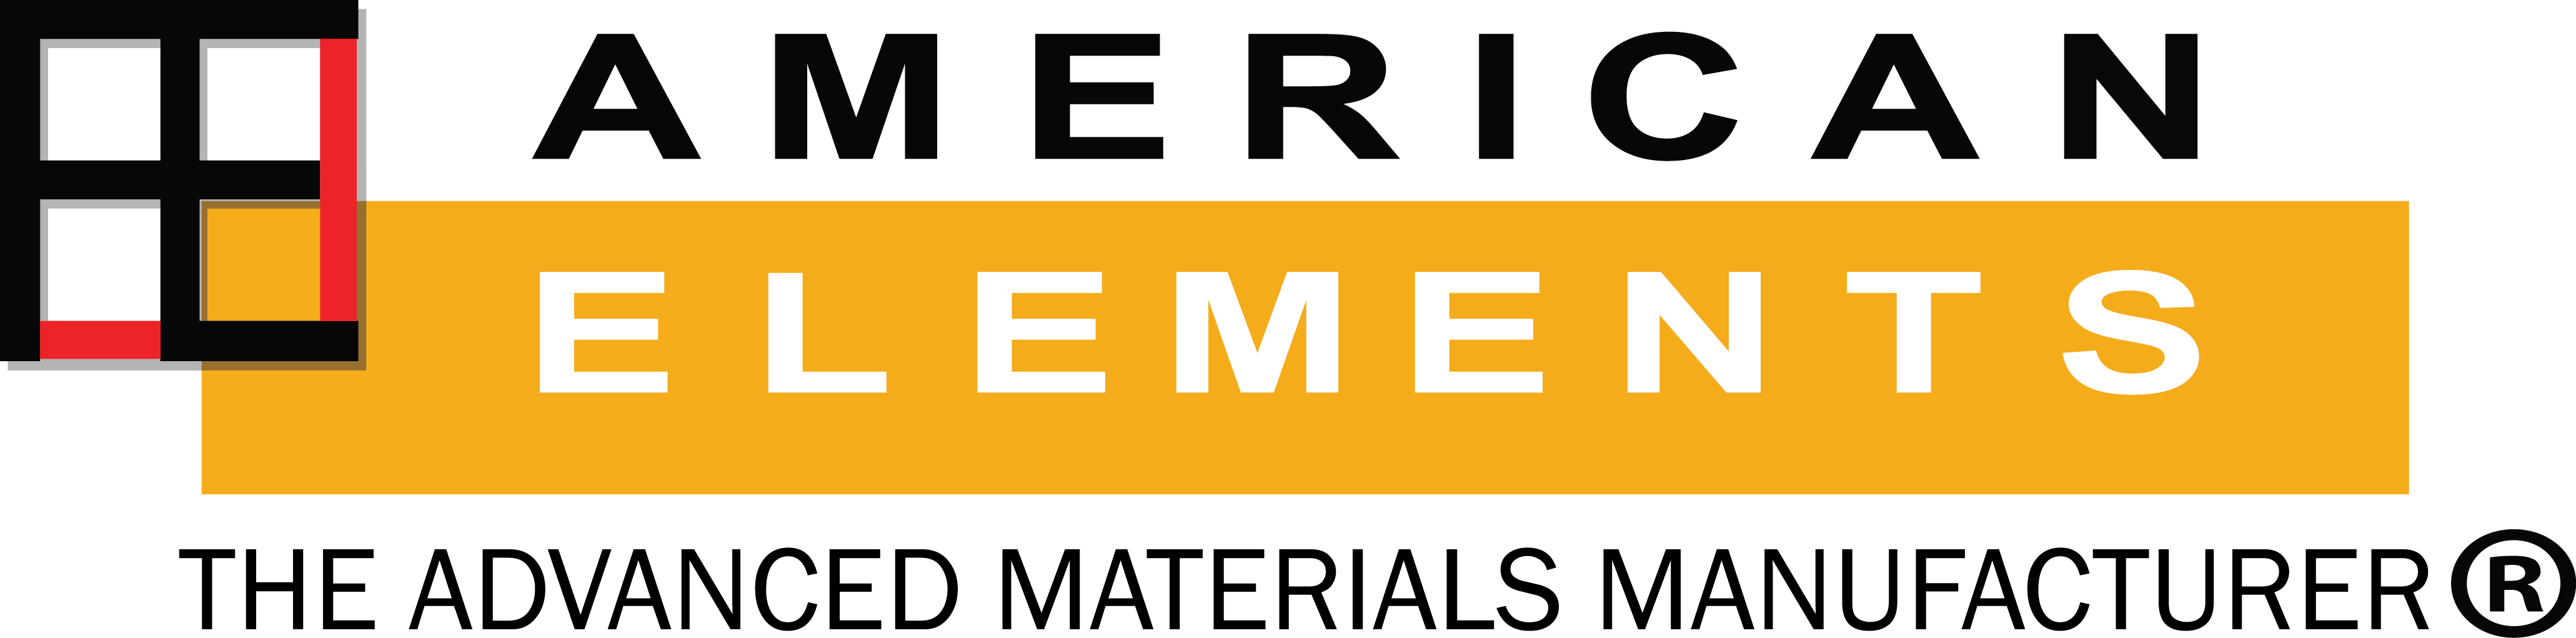 American Elements, global manufacturer of high purity metals, semiconductors, nanomaterials, sputtering targets & evaporation materials for optoelectronics, sensors, thin films, & NEMS devices